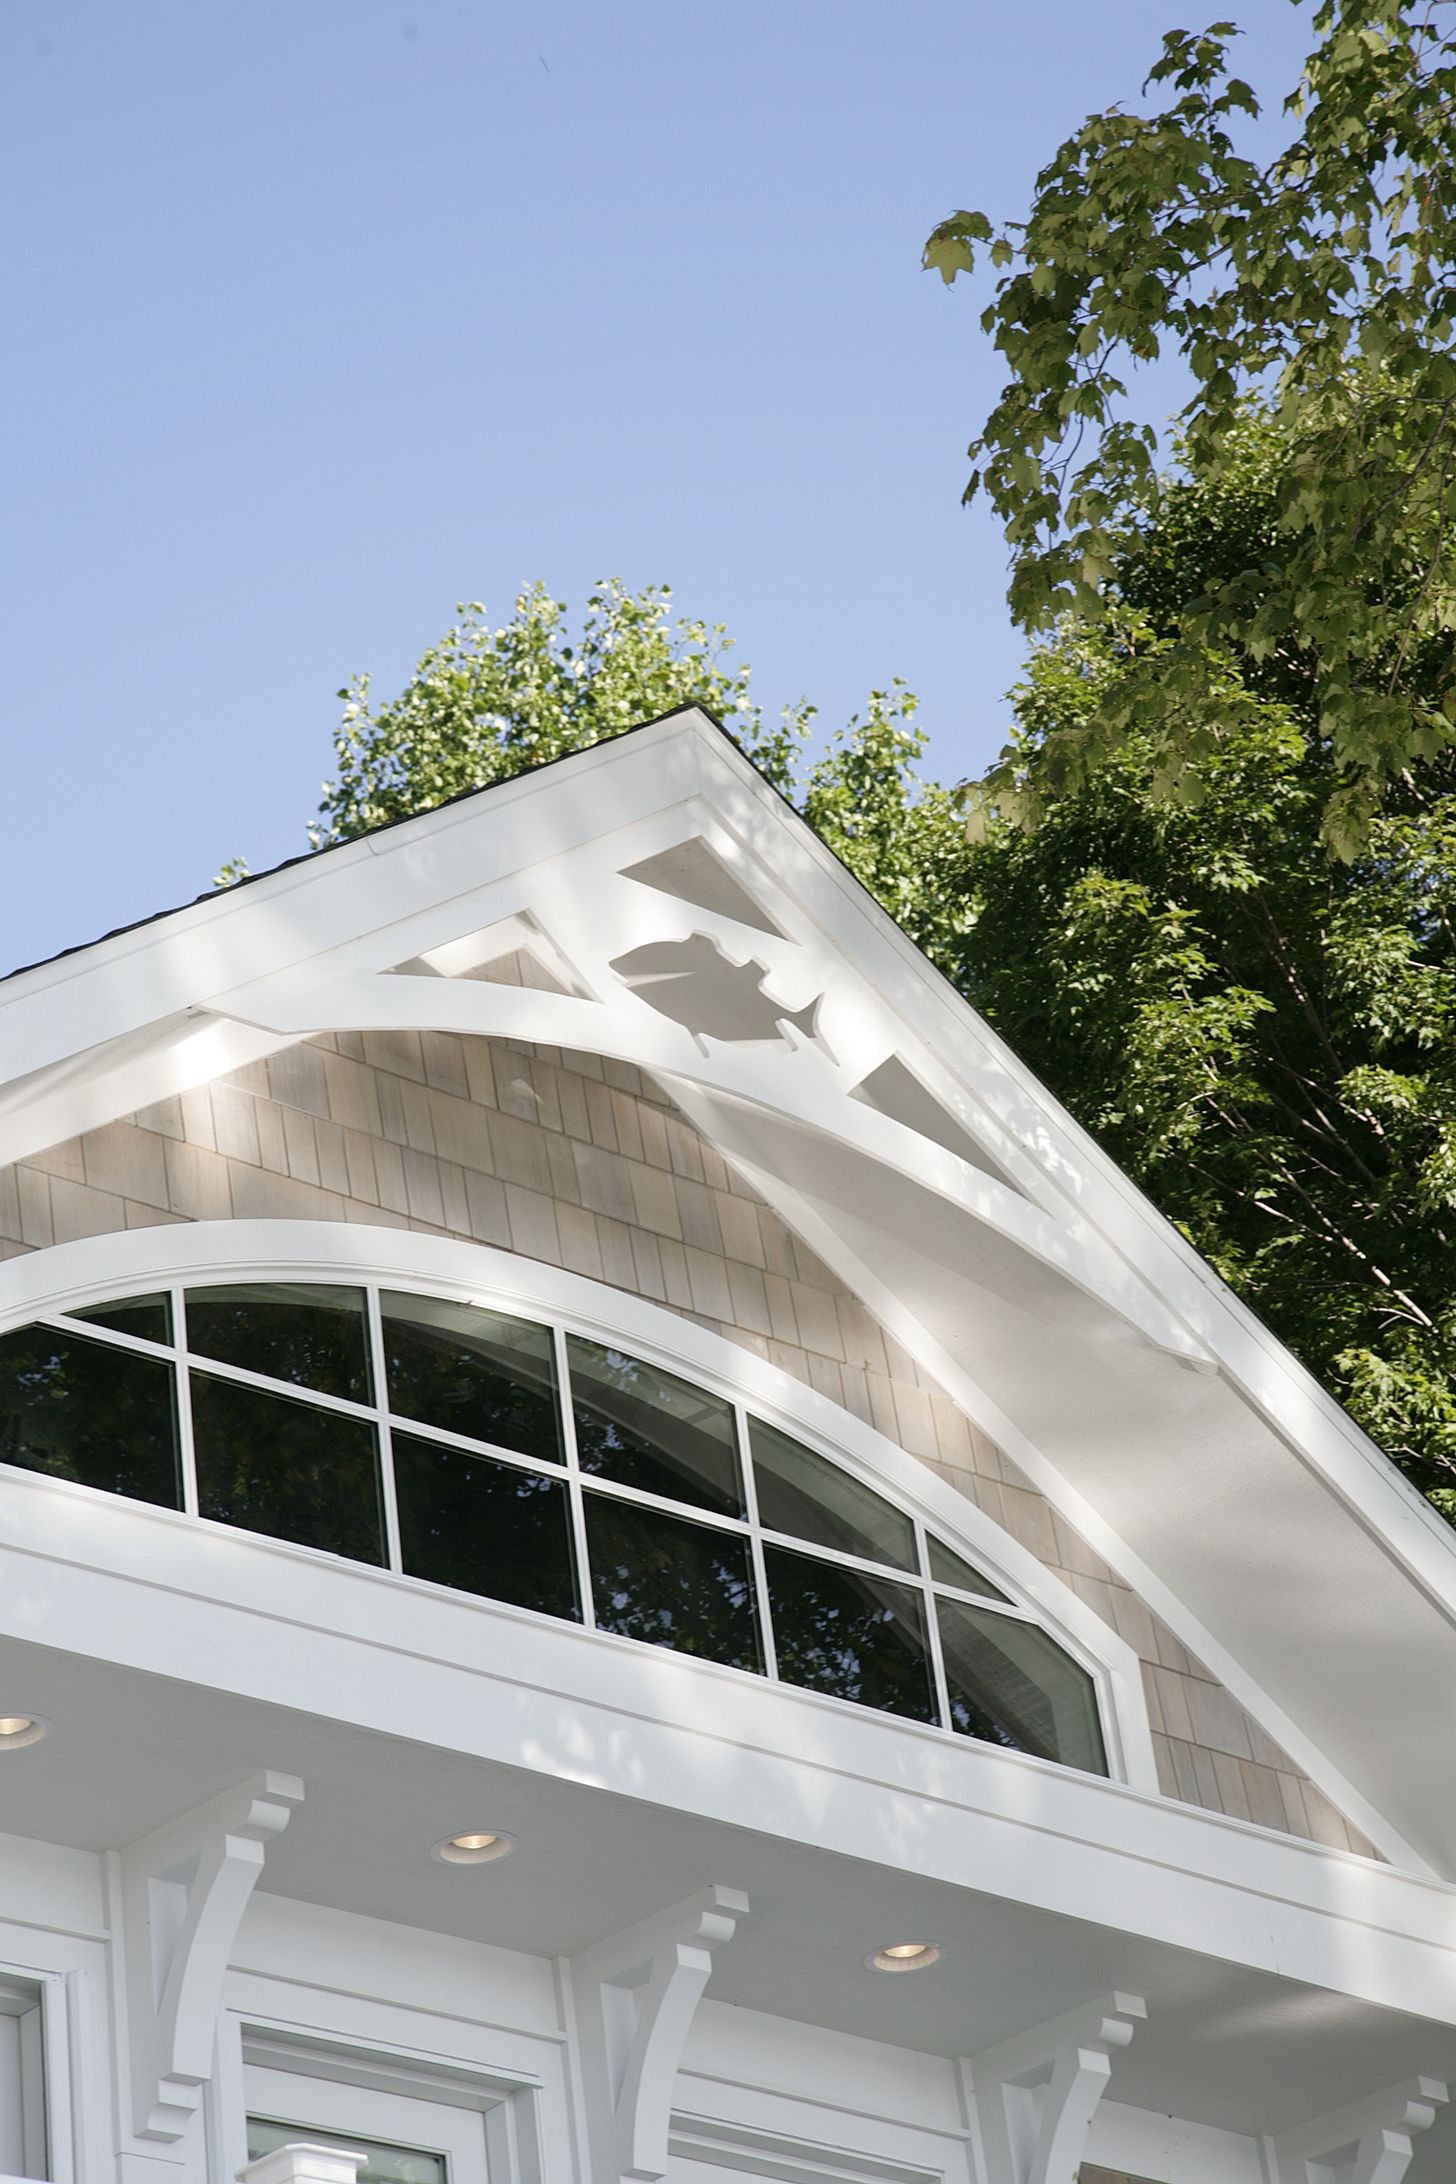 Gable end window ideas  transom window in gable end  windows can make a statement